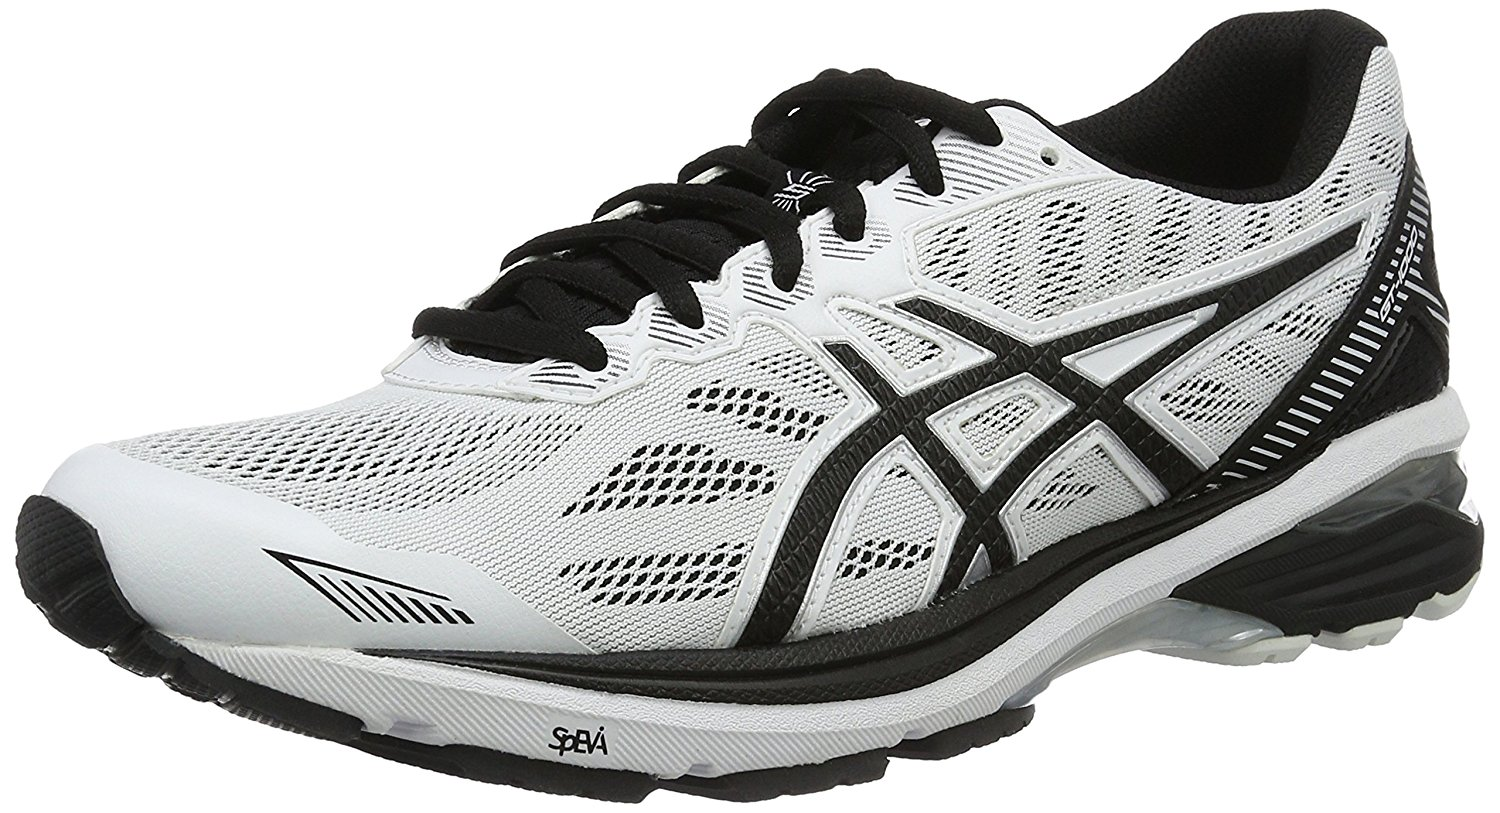 ASICS Gel-Nimbus 18 Running Shoes best shoes for sesamoiditis